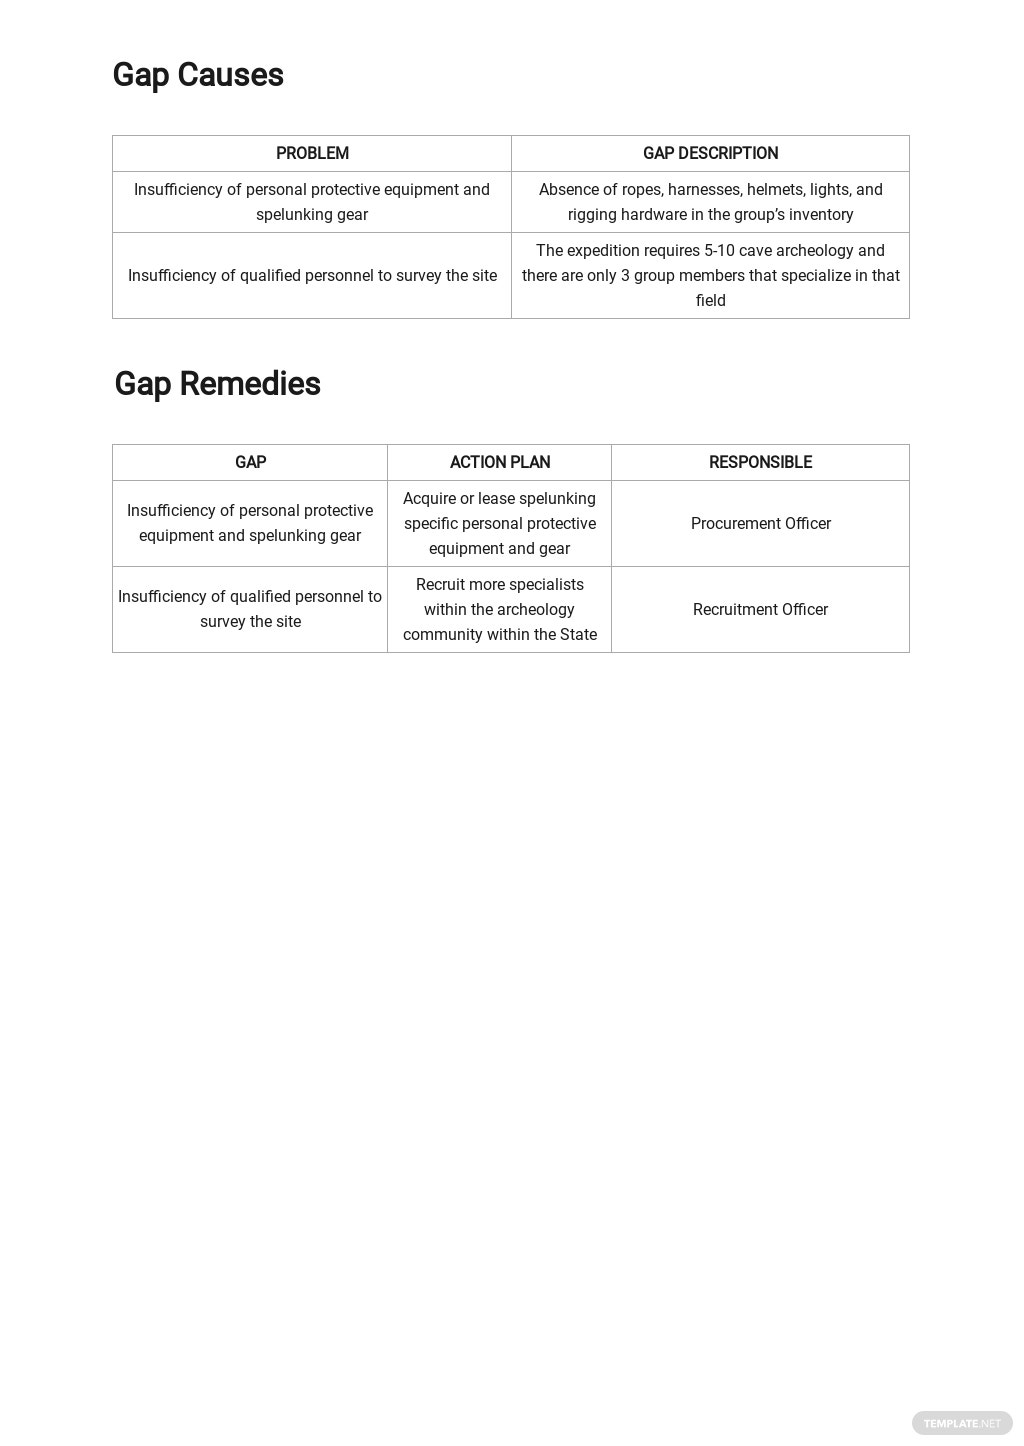 Safety Gap Analysis Template [Free PDF] - Google Docs, Word, Apple Pages